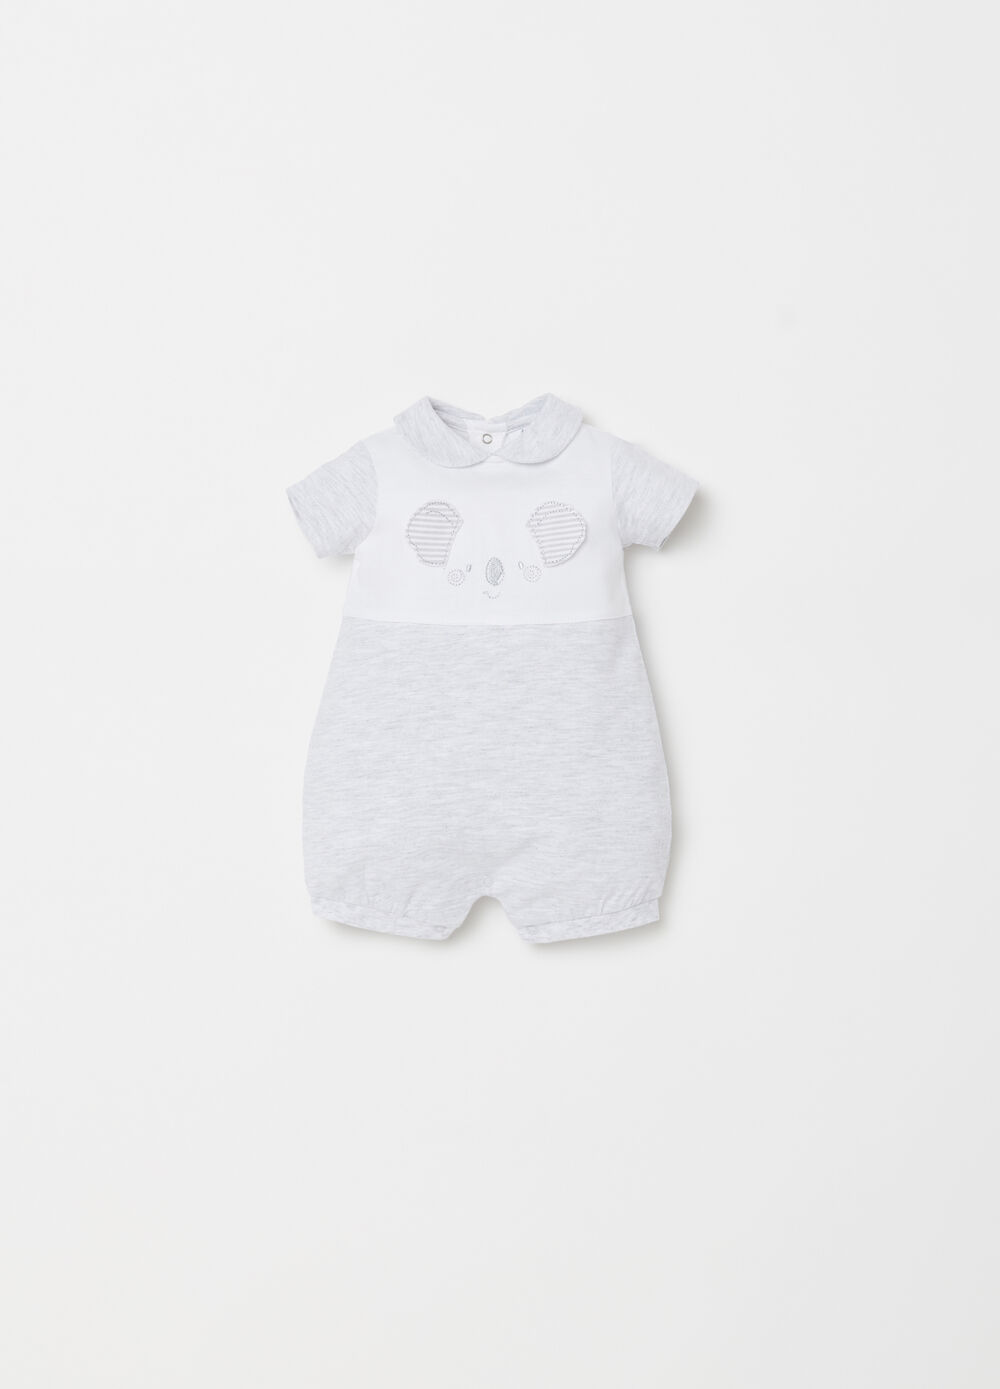 Short jersey onesie with embroidery and applications